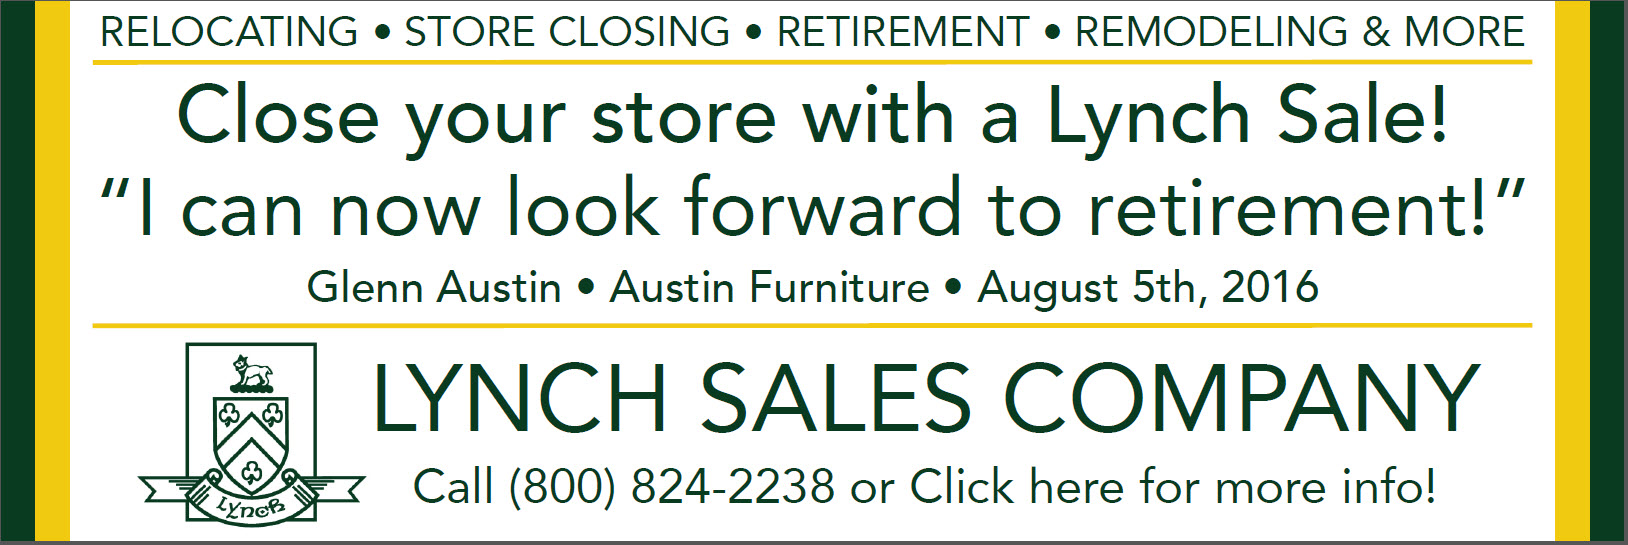 Close Your Store with a Lynch Sale